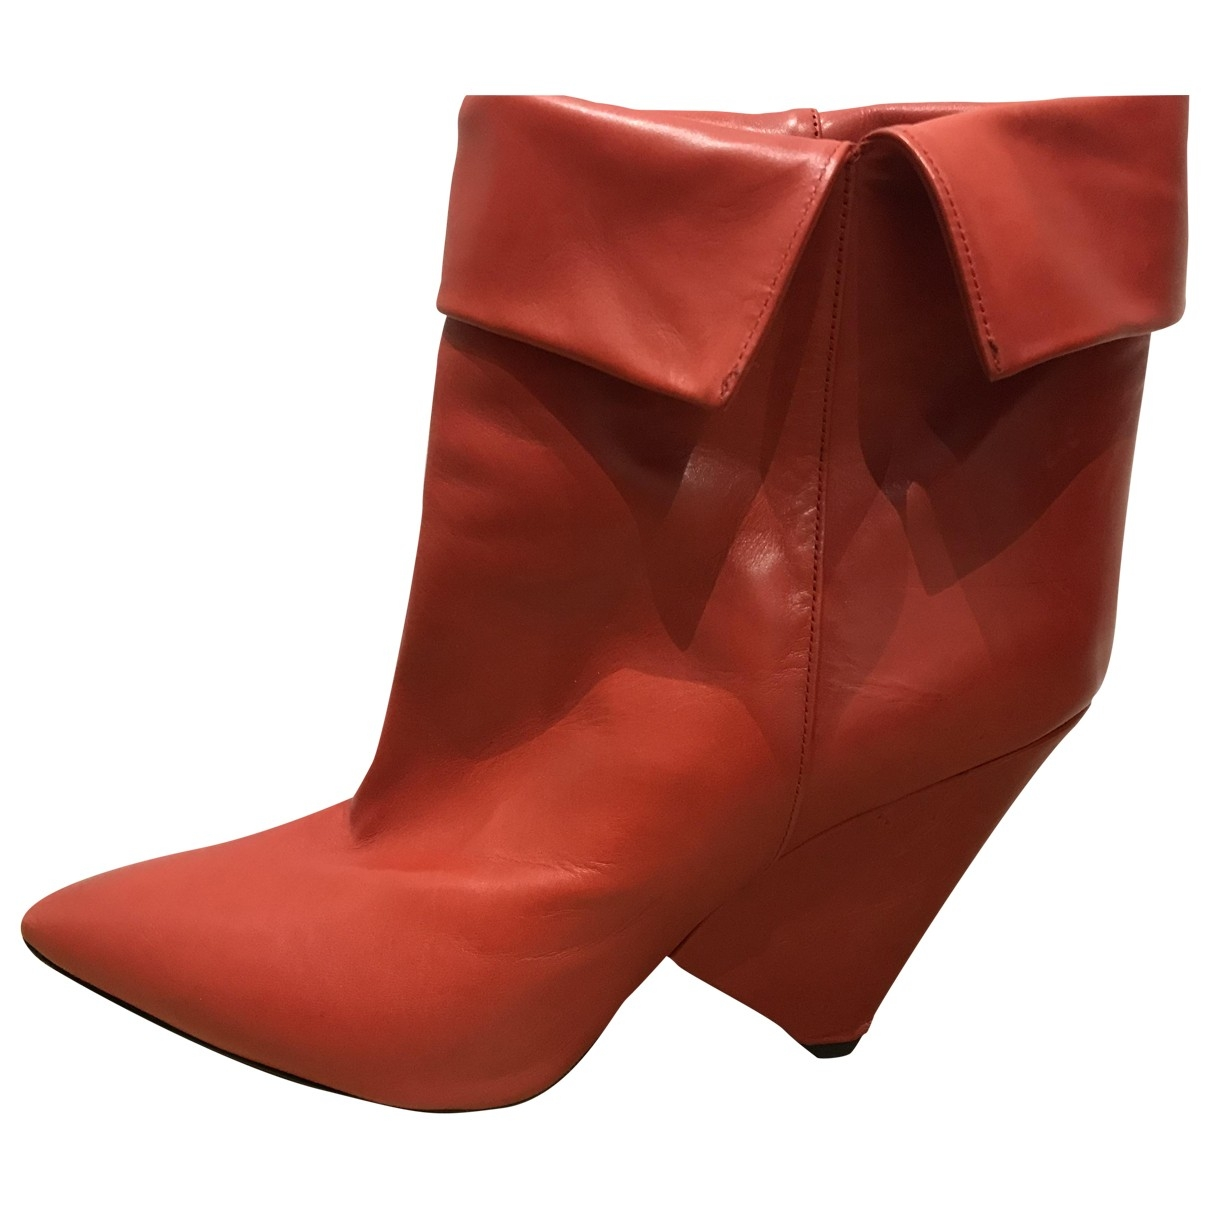 Isabel Marant Purdey Red Leather Ankle boots for Women 40 EU